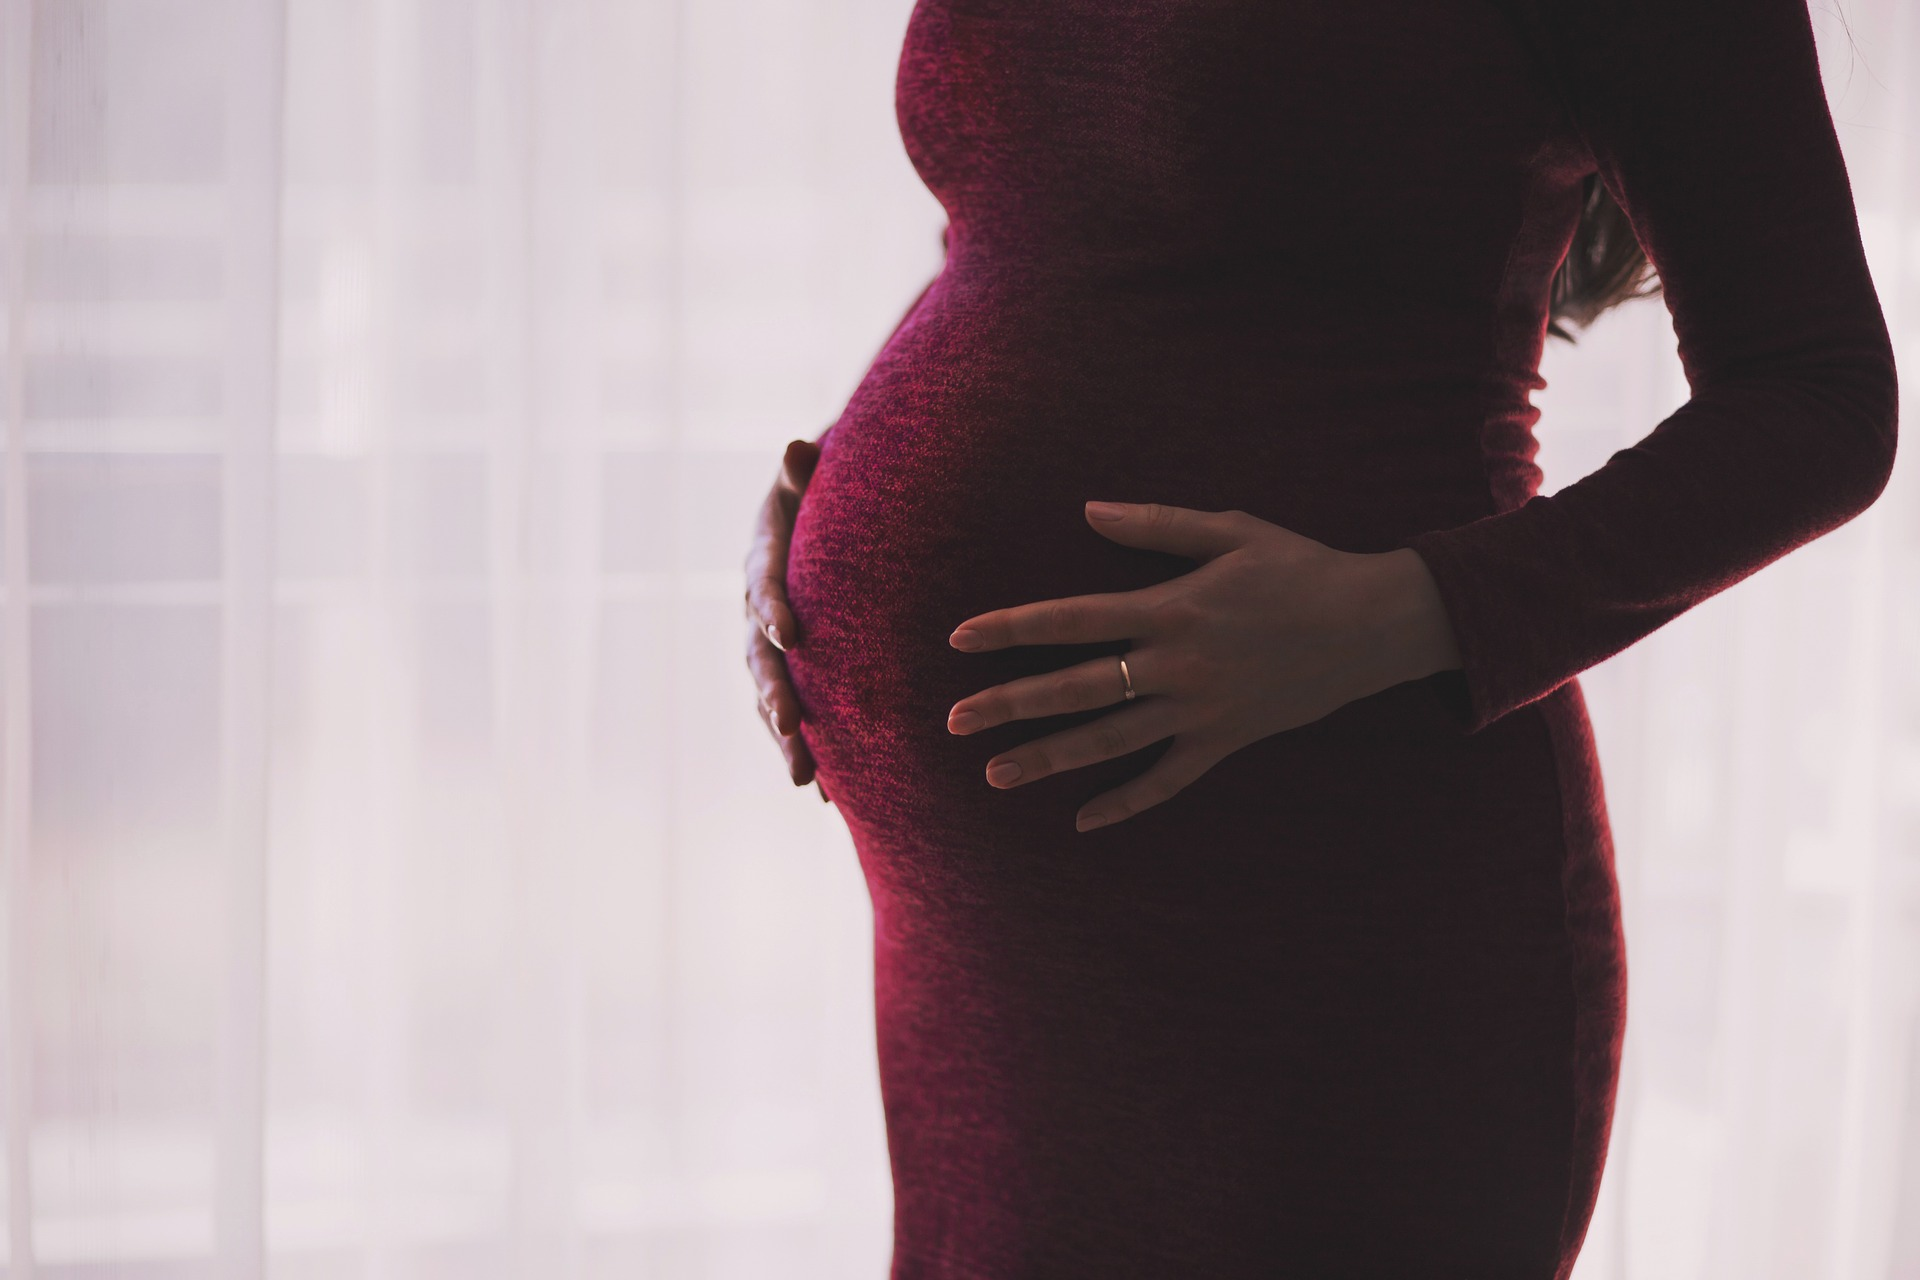 Spinal Fusion FAQ: Is Pregnancy After Spinal Fusion Safe? | Mommy Runs It